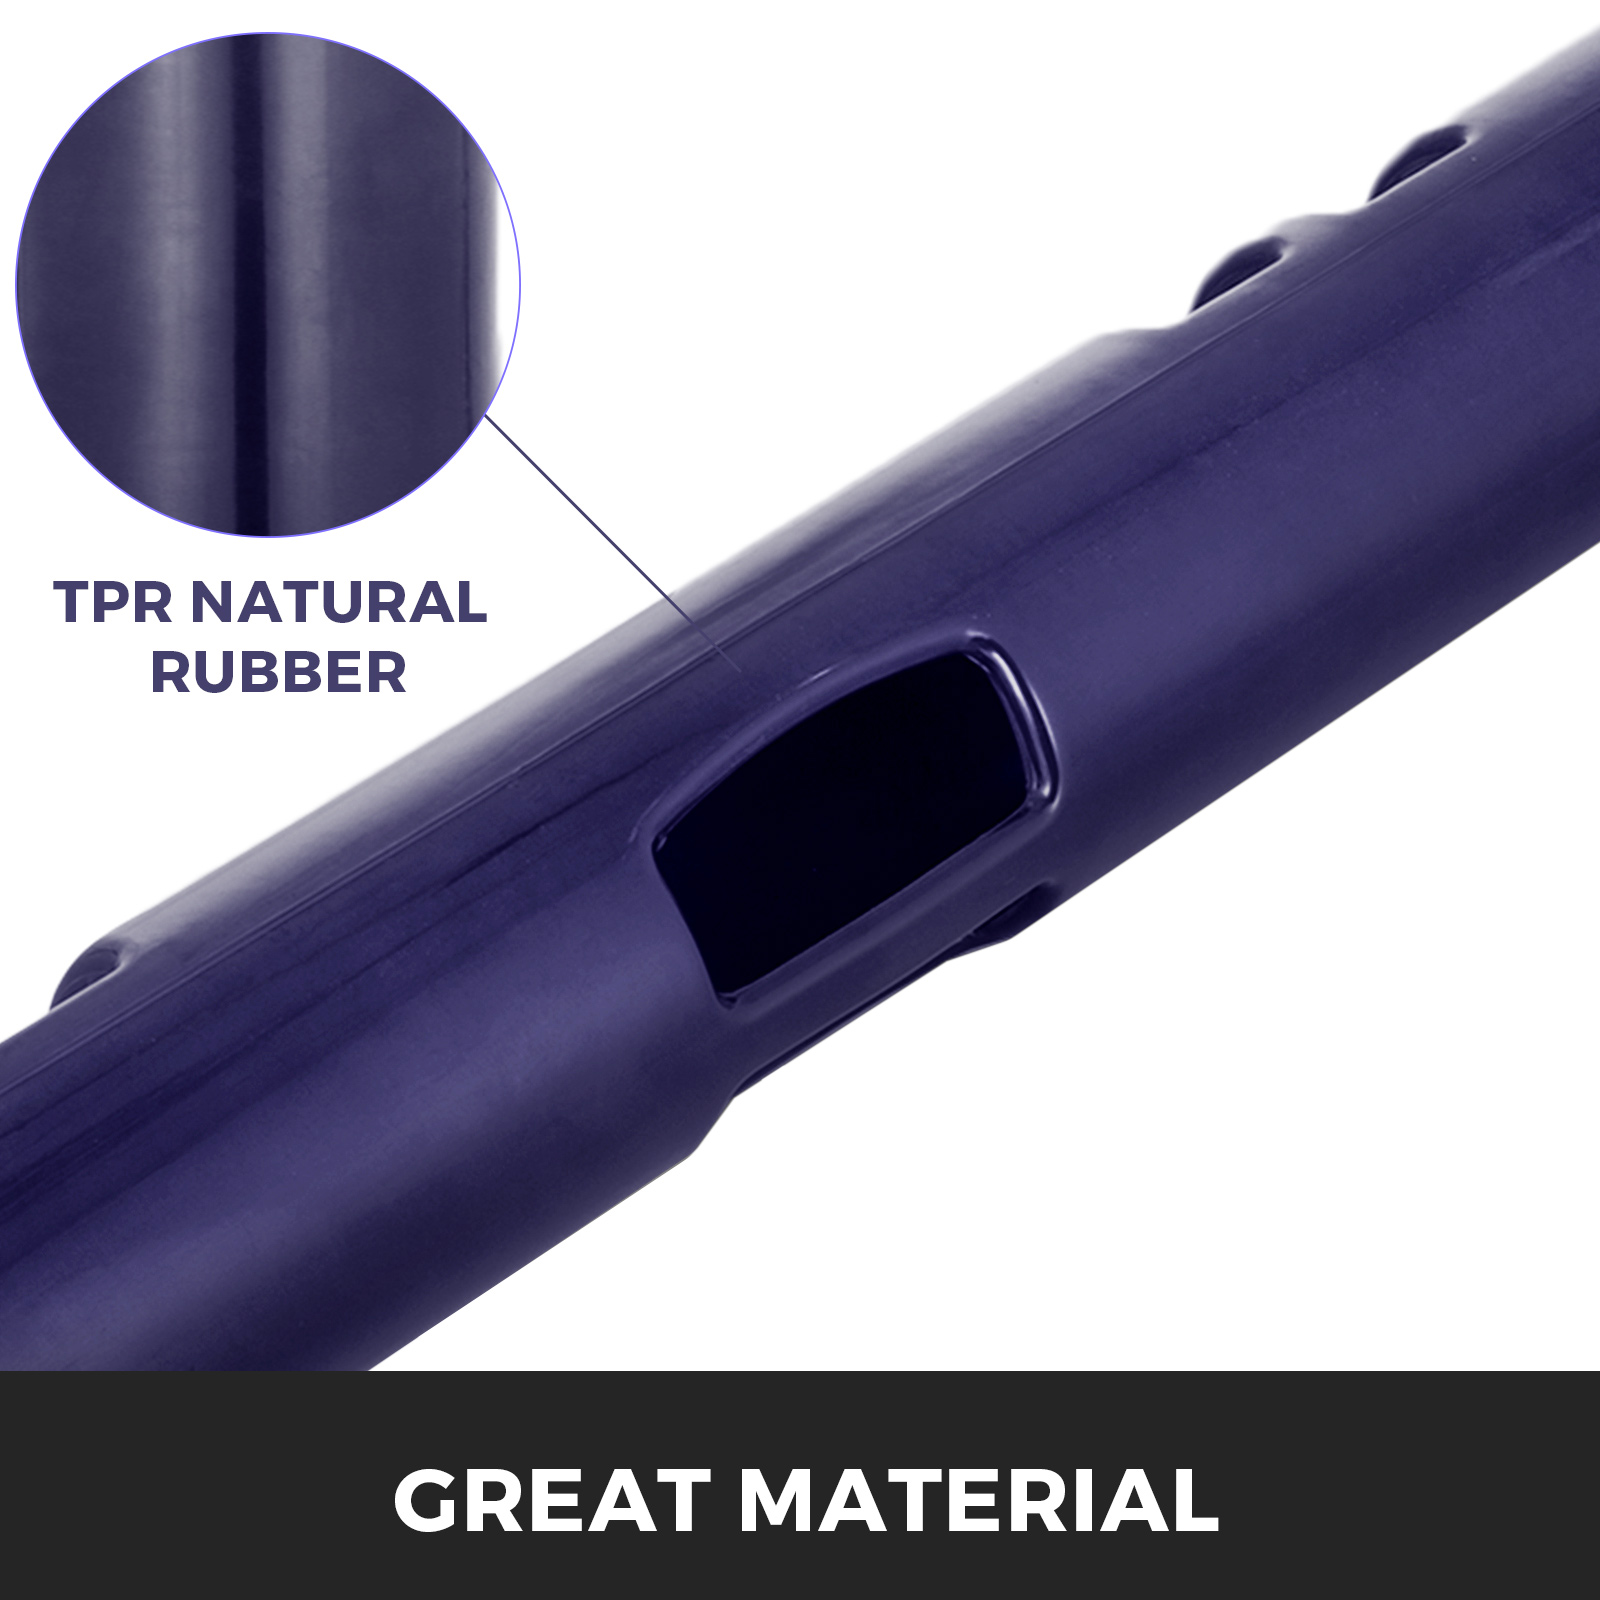 Vipr-Fitpro-Fitness-Tube-Loaded-Movement-Training-weightlifting-4-6-8-10-12-Kg thumbnail 146